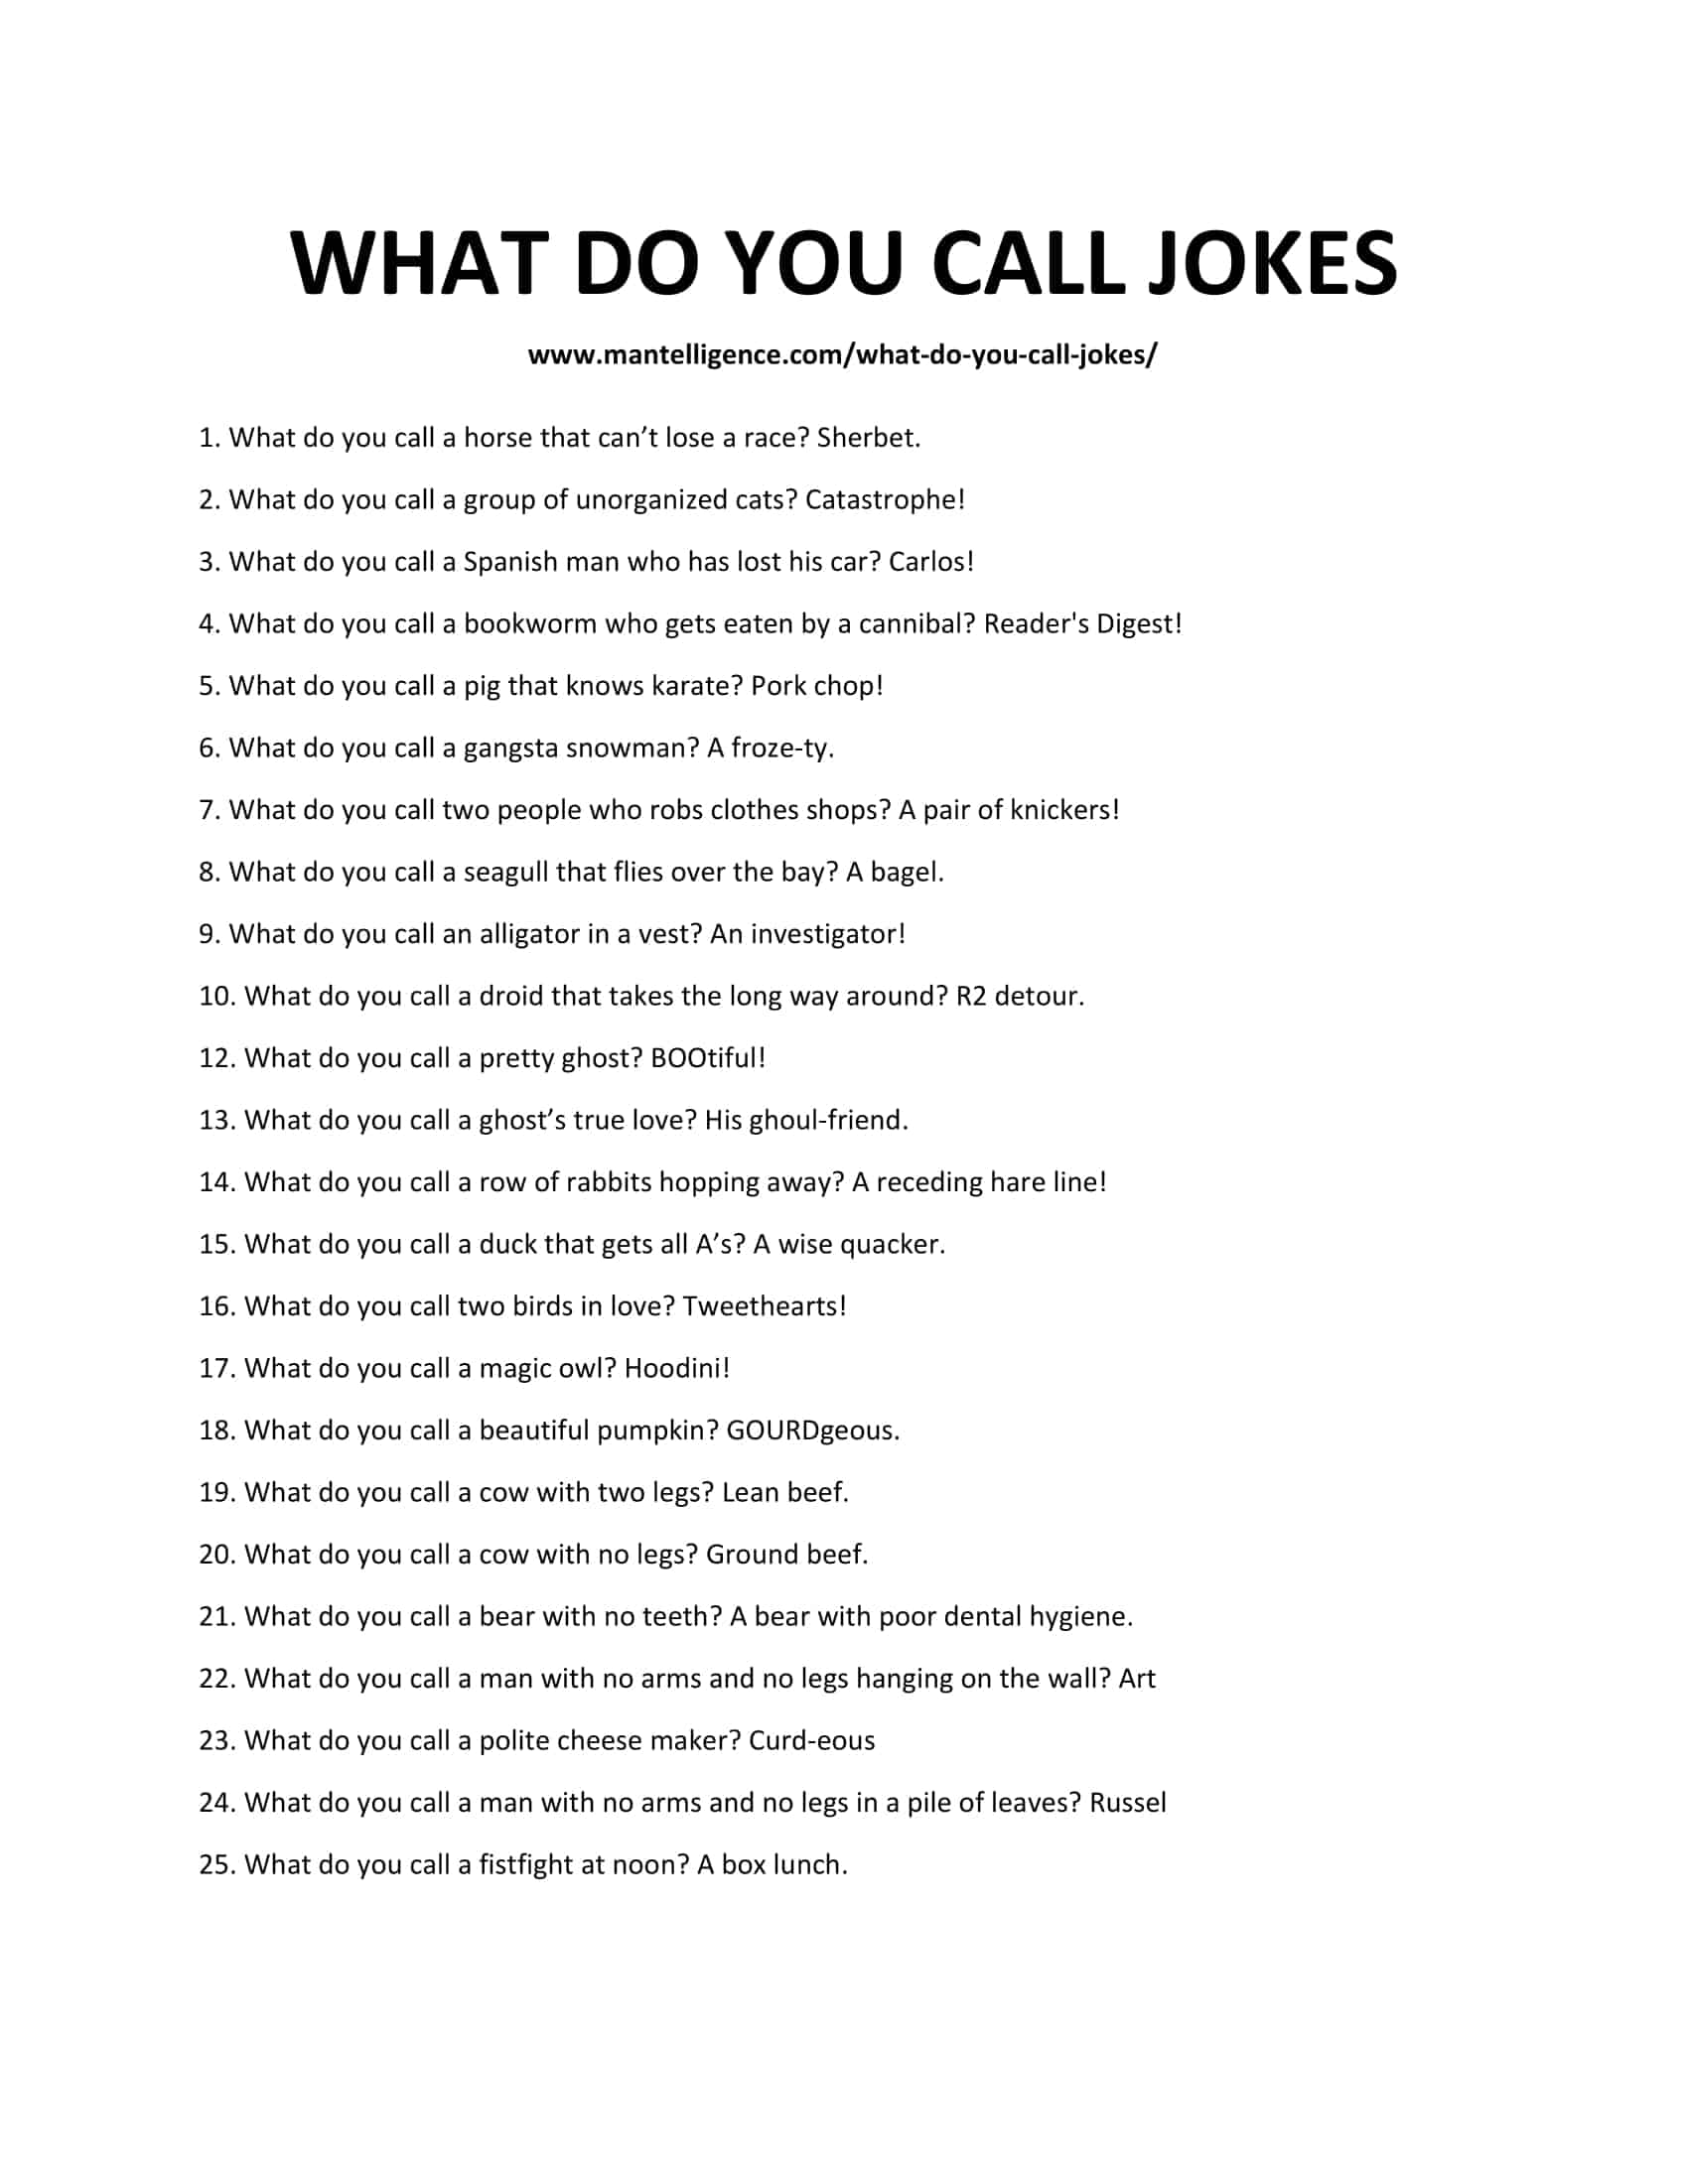 52 What Do You Call Jokes